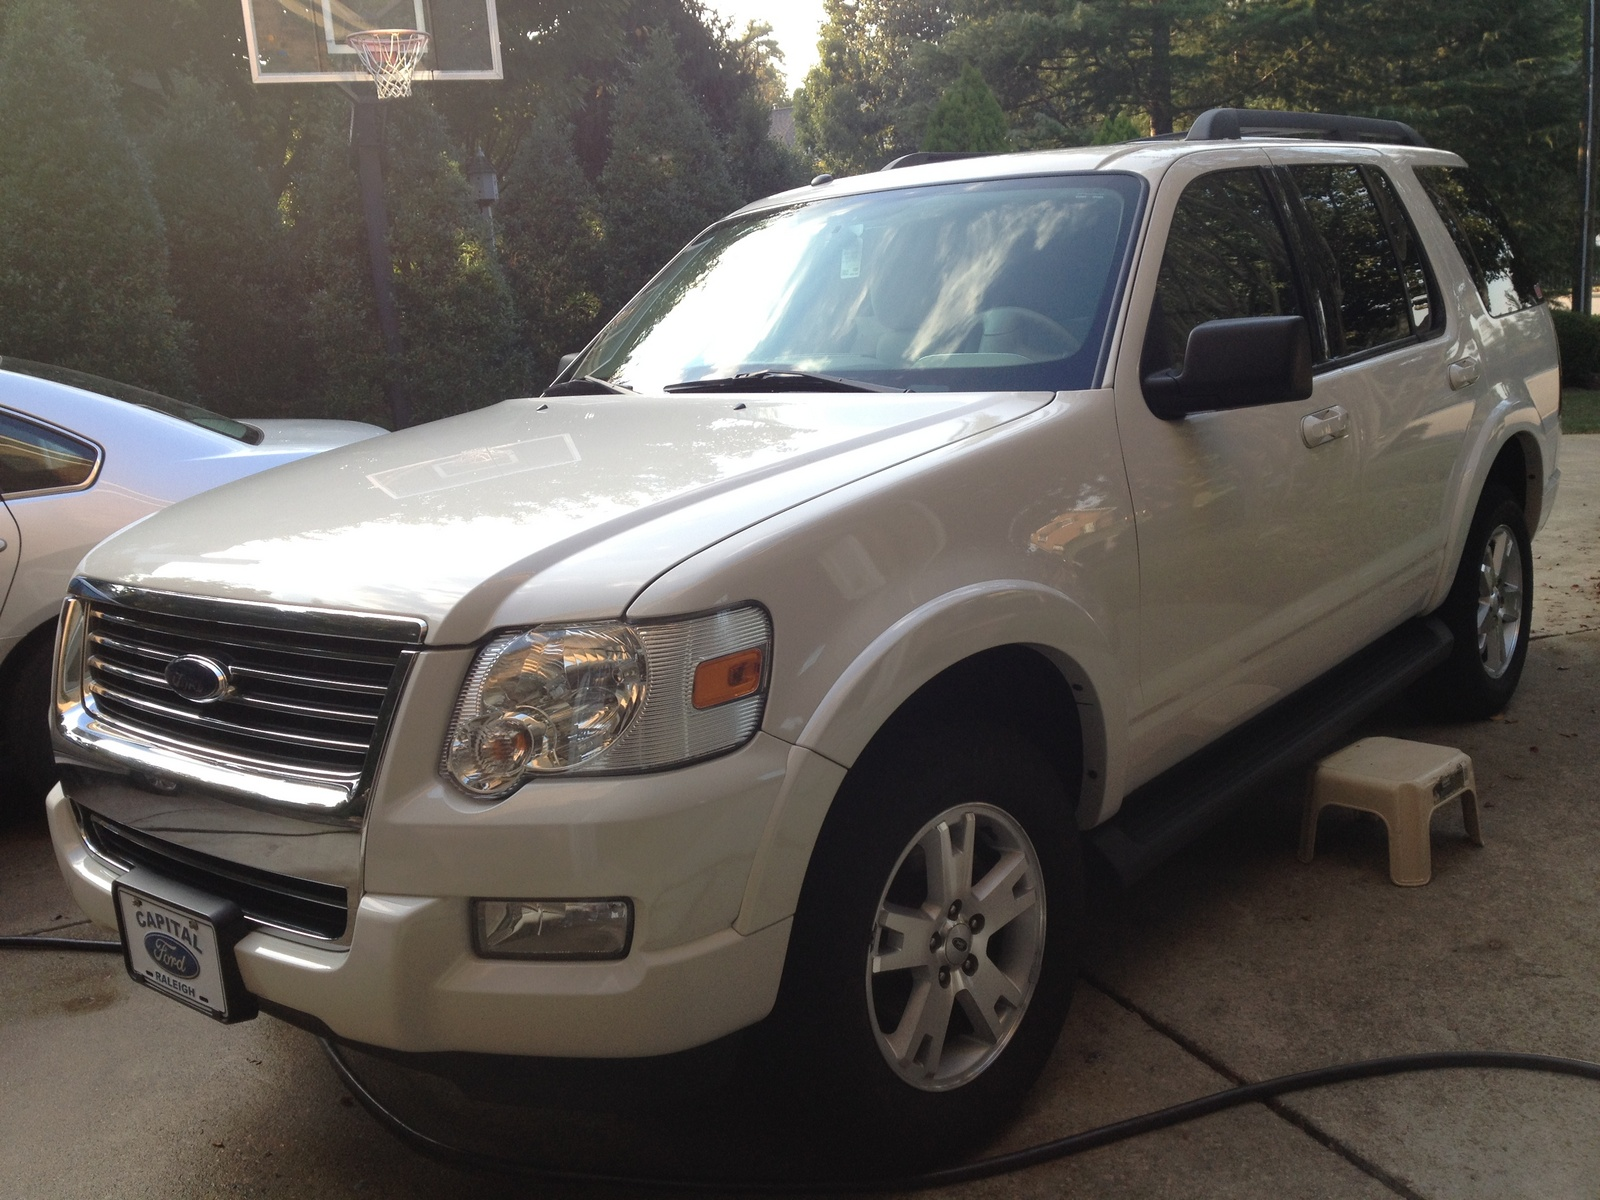 2006 Ford Expedition Eddie Bauer >> 2009 Ford Explorer - Pictures - CarGurus